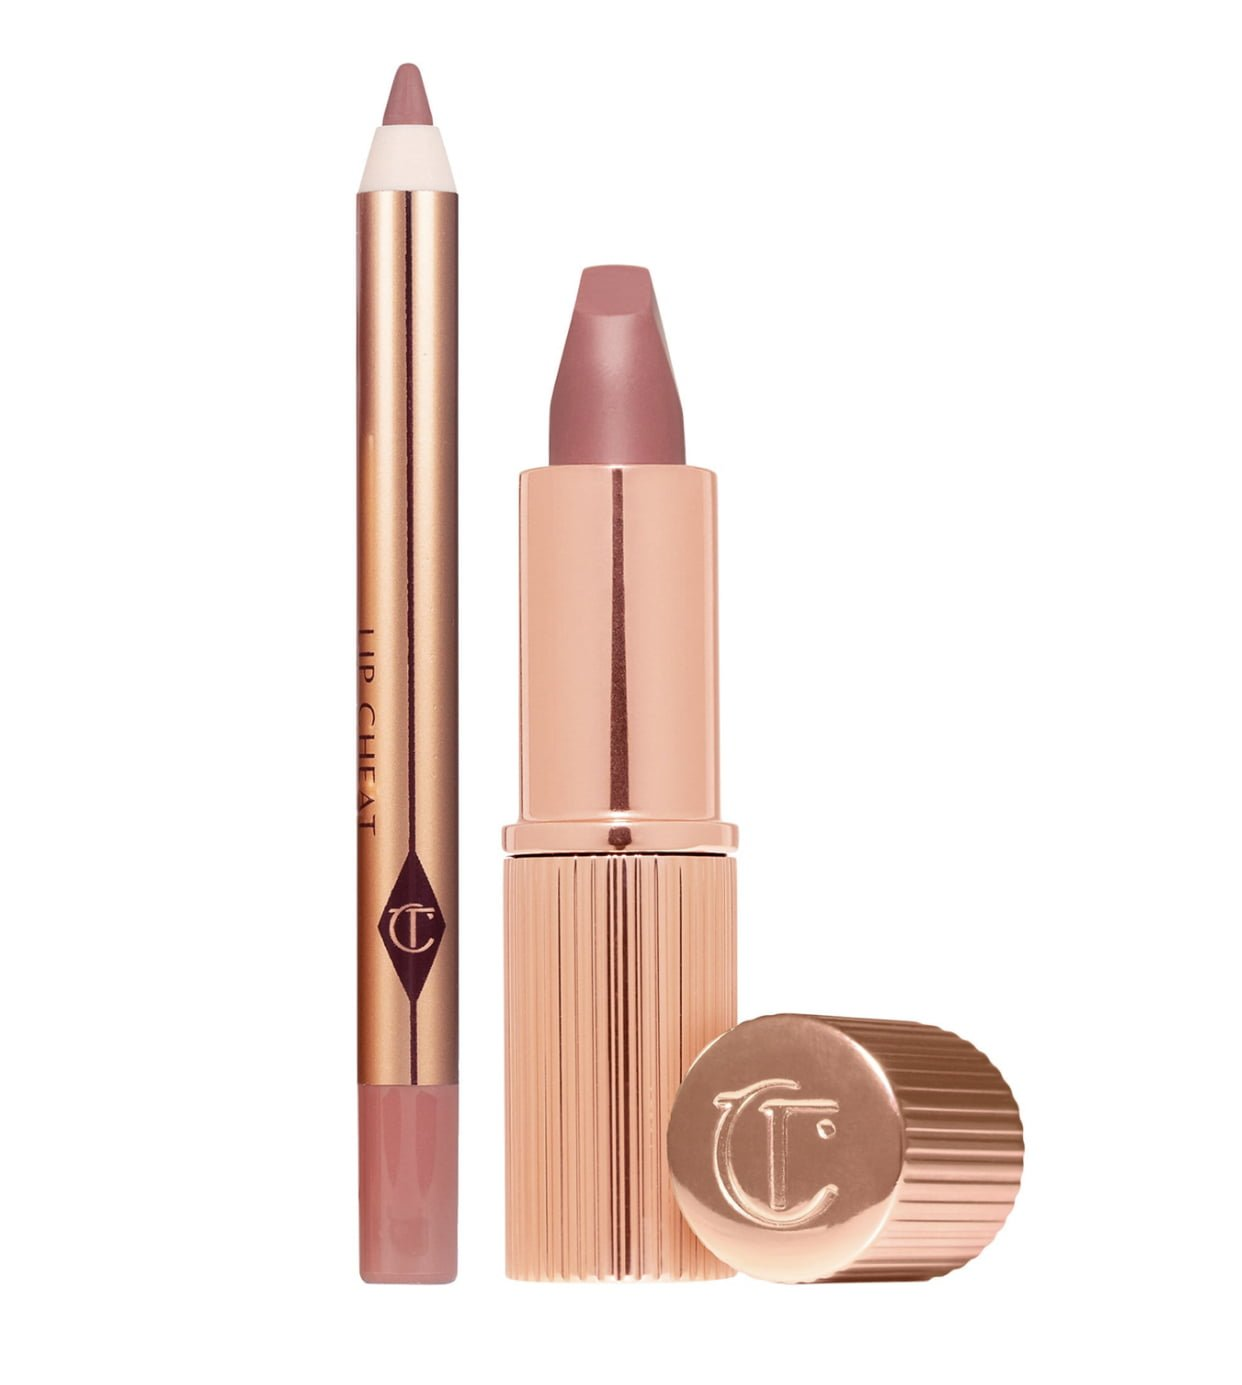 Charlotte Tilbury Mini Pillow Talk Set